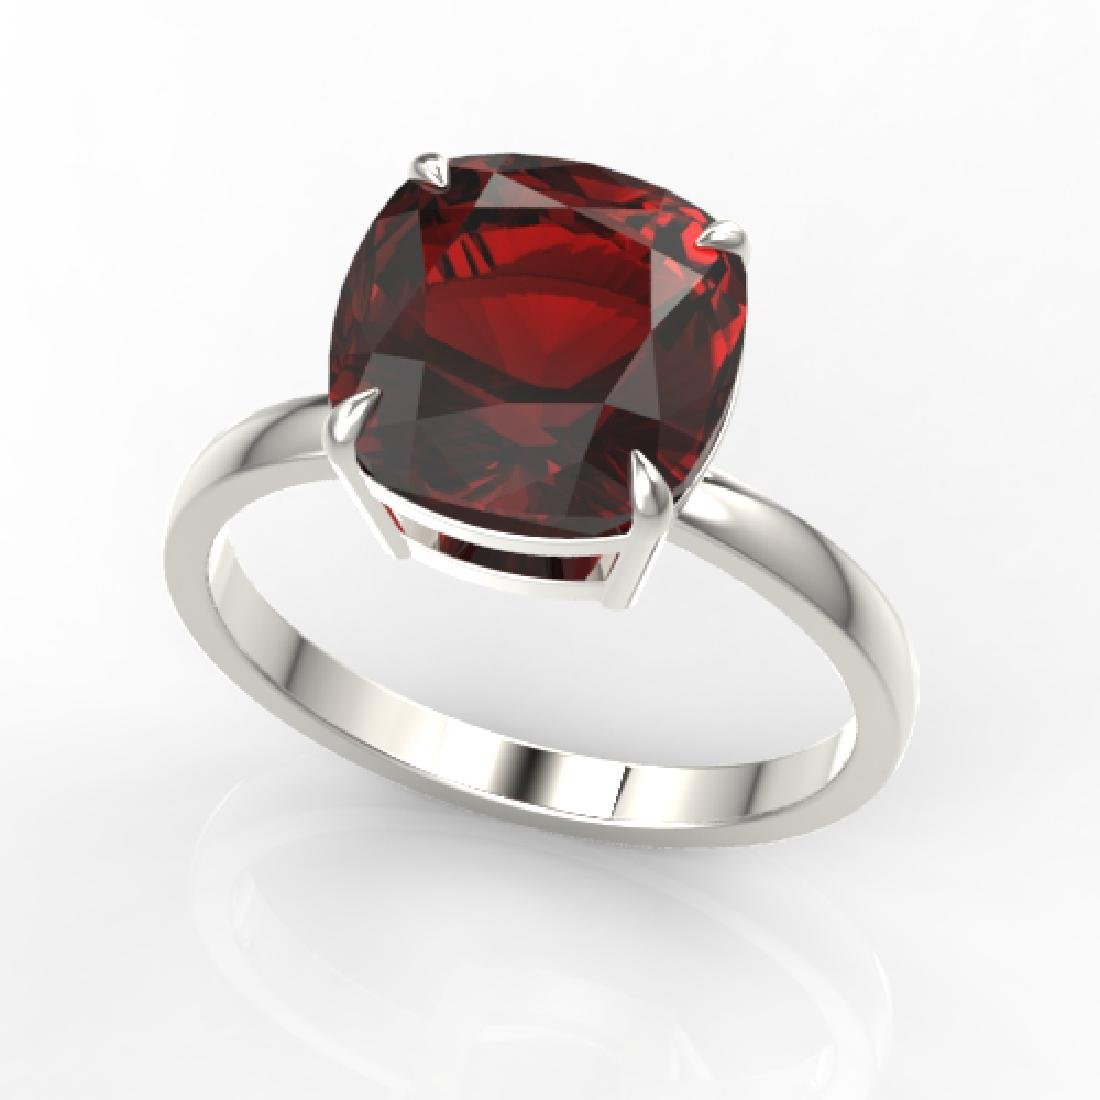 6 CTW Cushion Cut Garnet Inspired Solitaire Engagement - 2